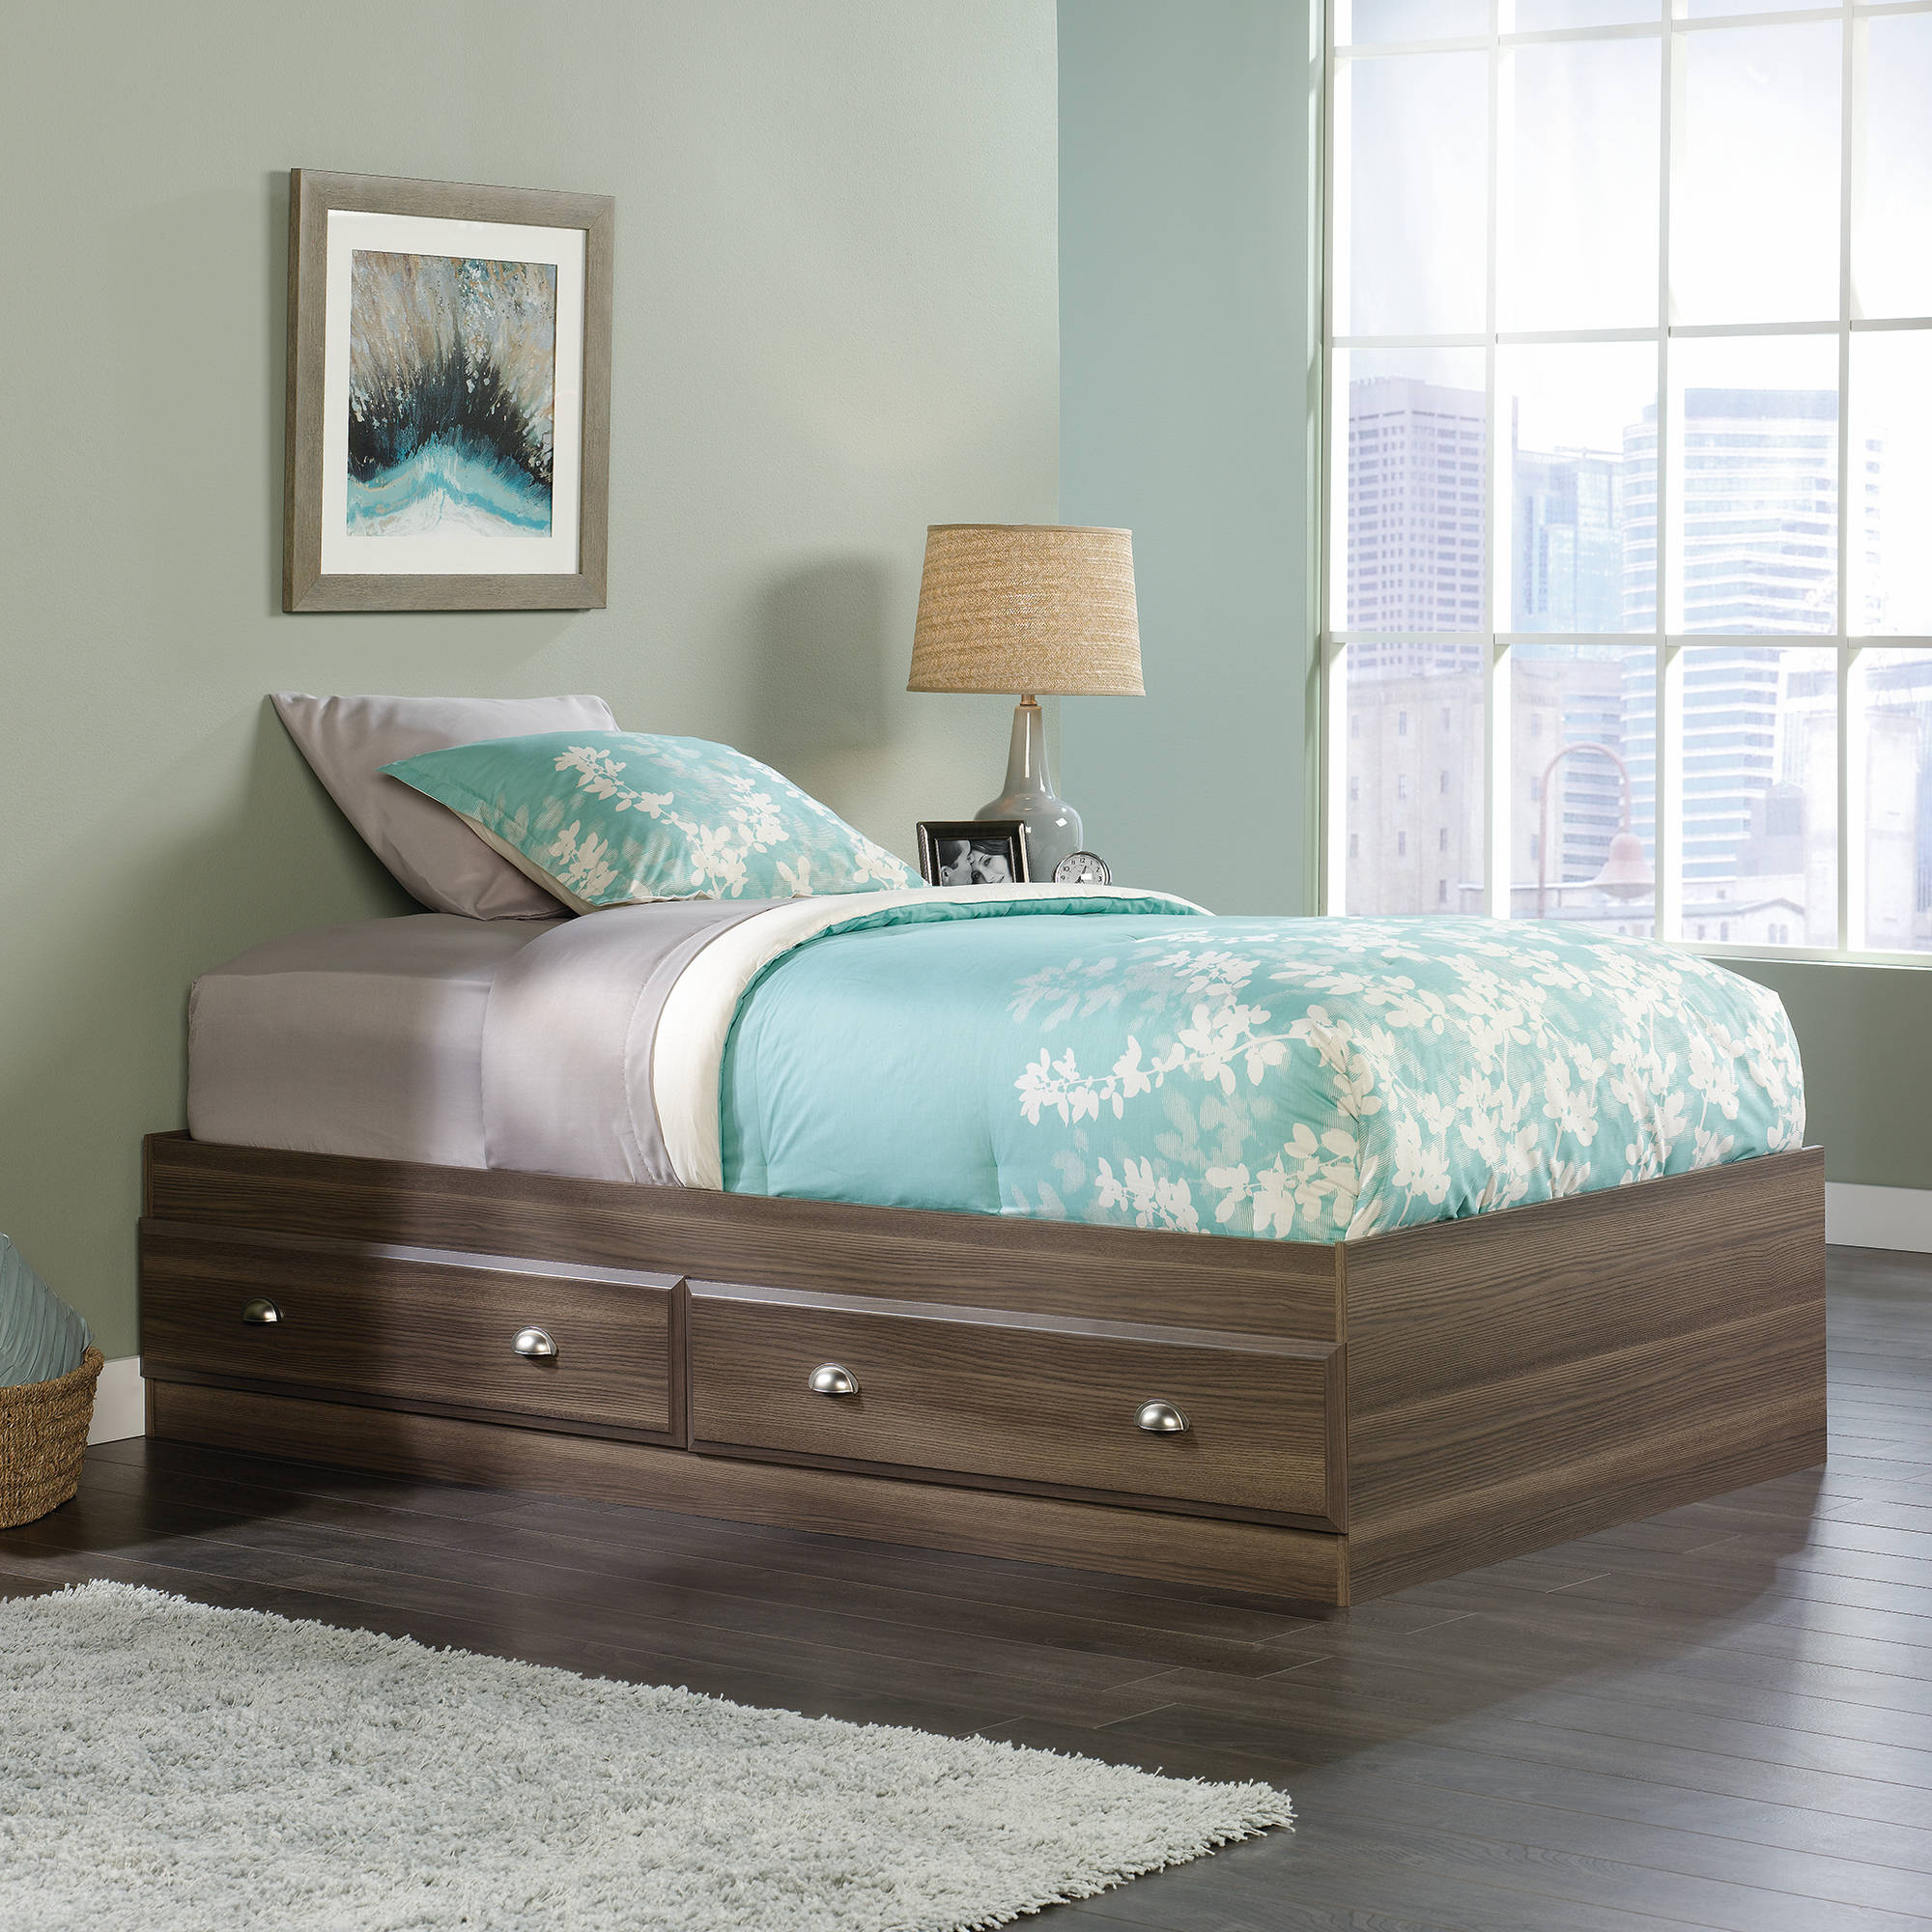 Sauder Shoal Creek Collection Mates Bed, Diamond Ash Finish